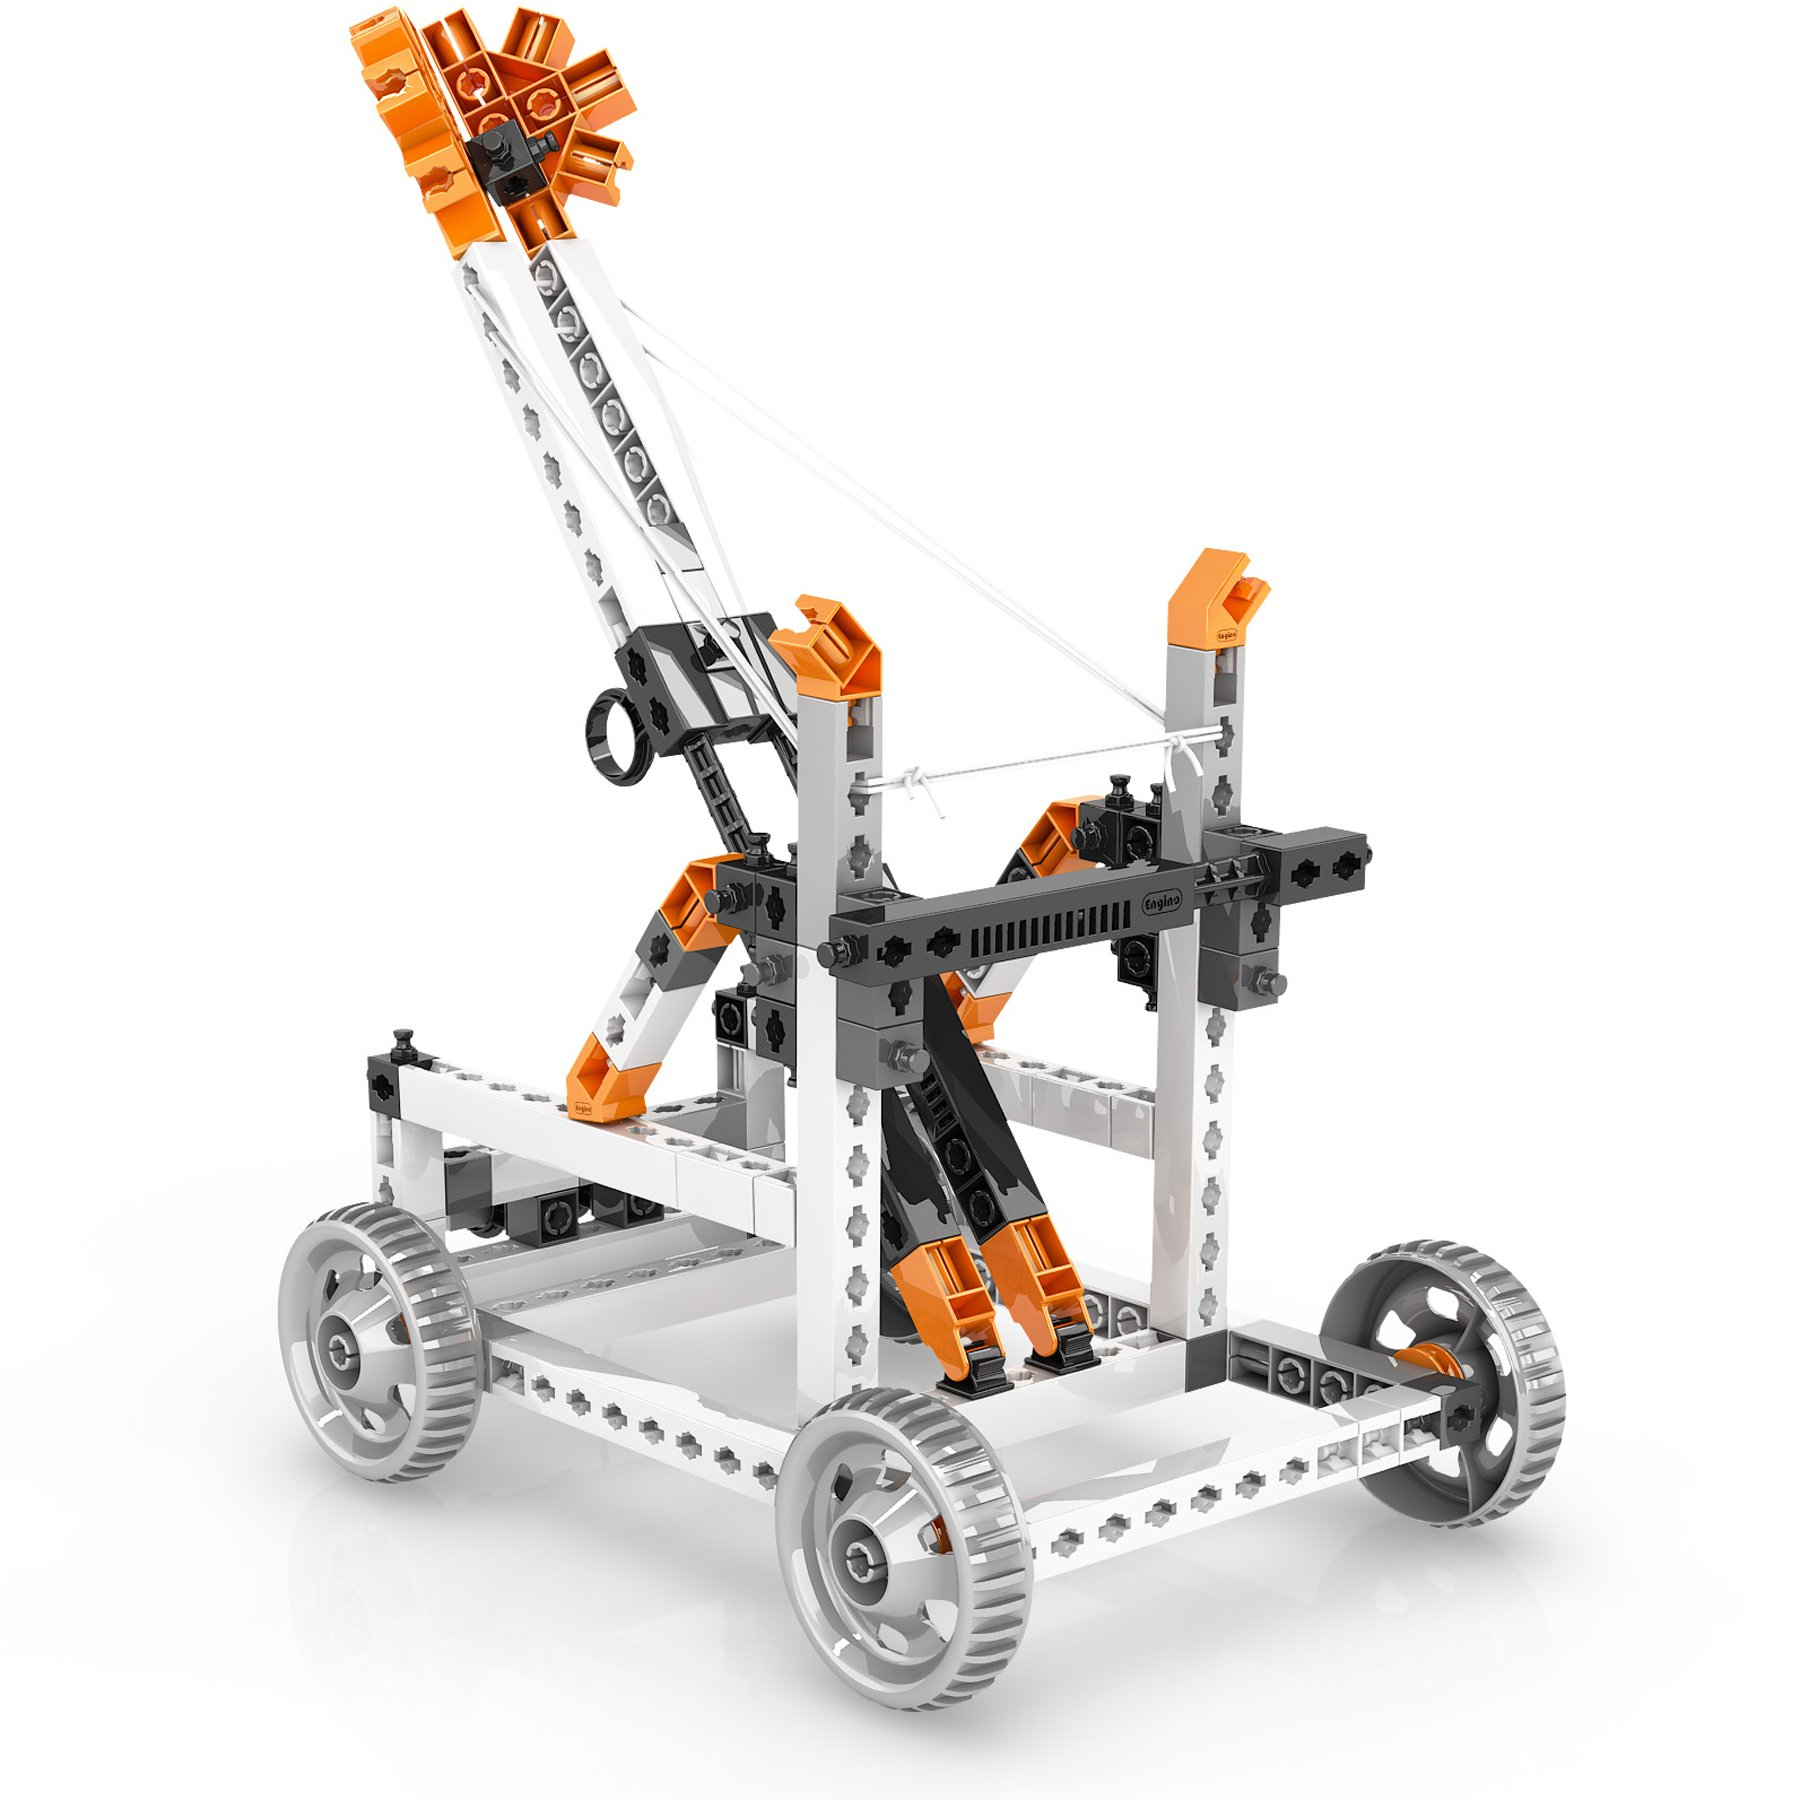 Engino Discovering STEM Simple Machines Mechanisms That Multiply Force Construction Kit by Engino (Image #2)